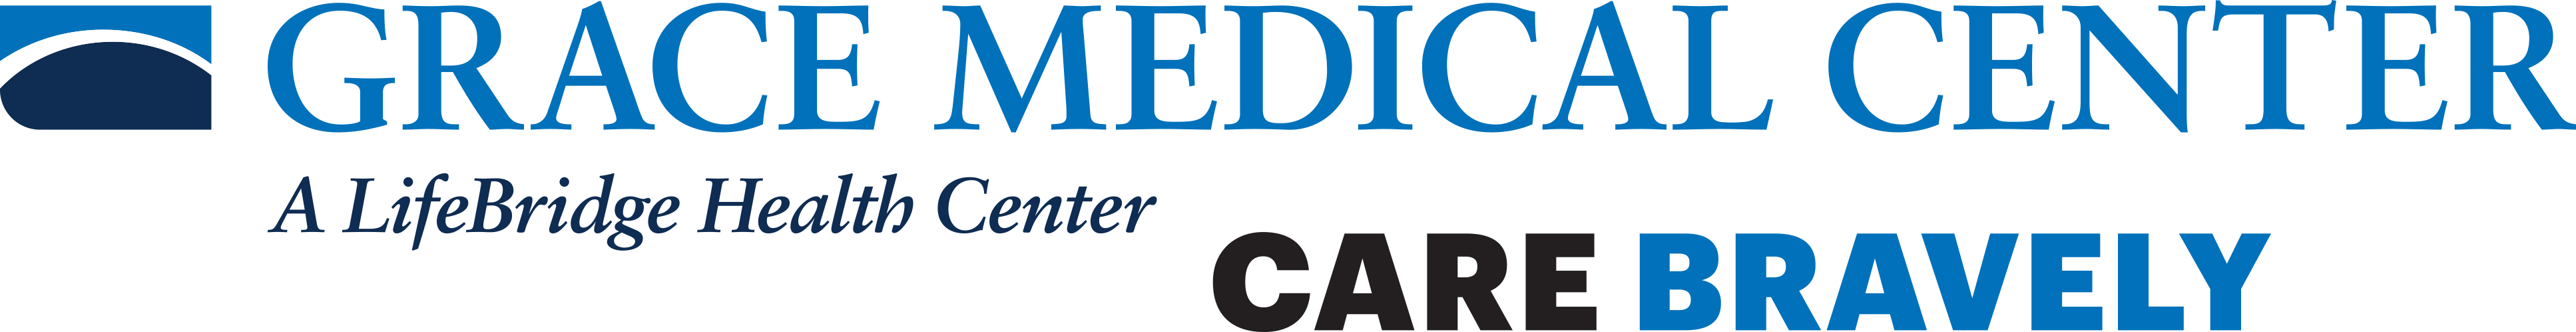 Grace Medical Center Logo